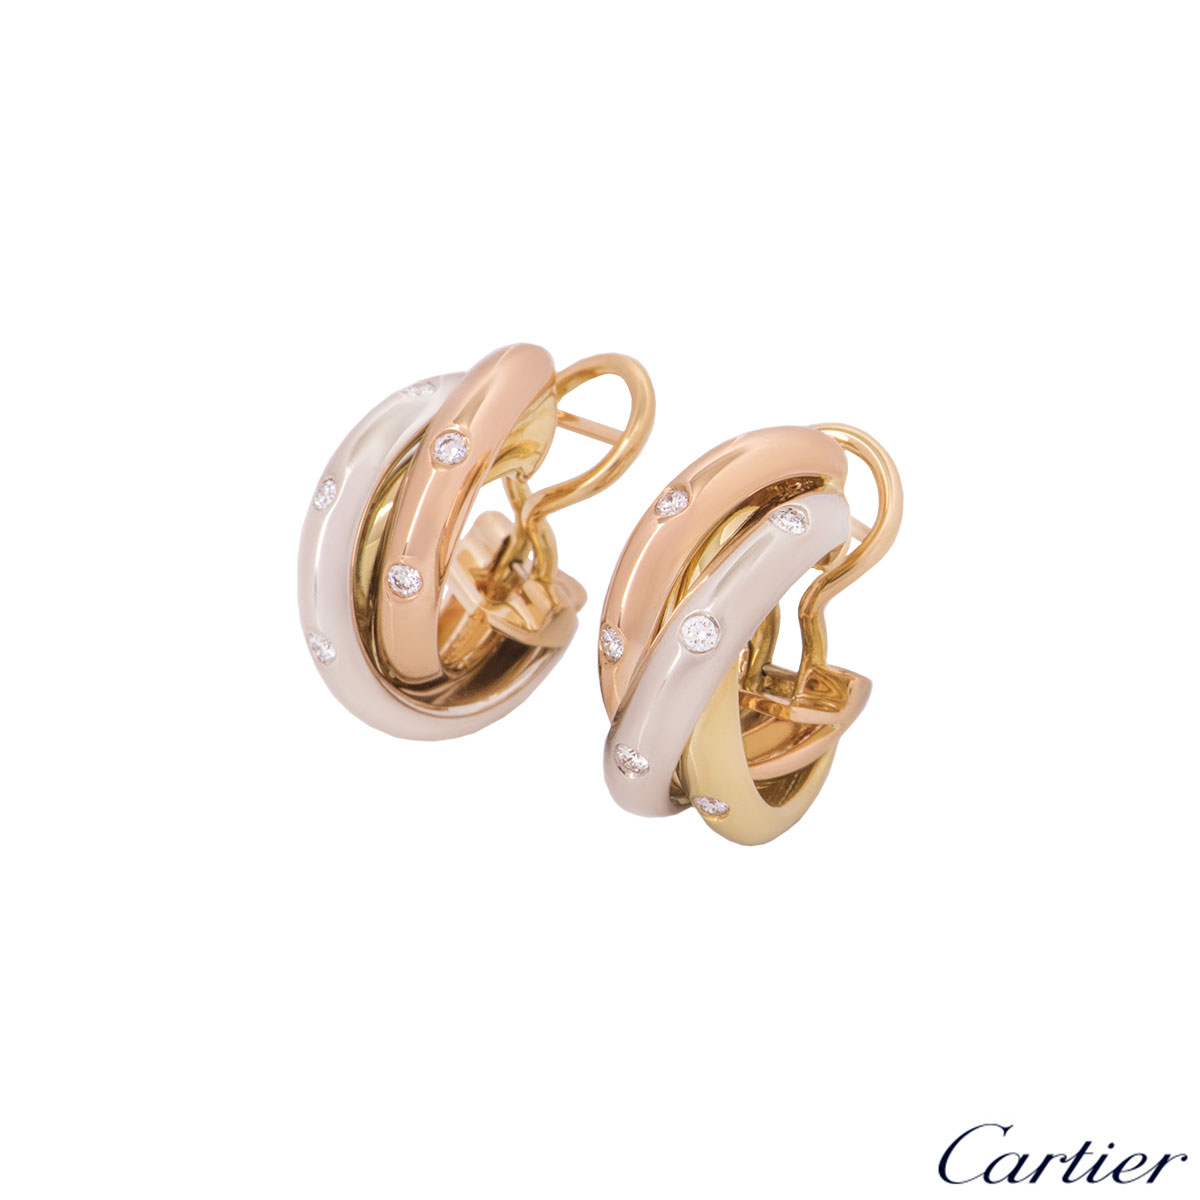 Cartier Tri-Colour Diamond Trinity Earrings B8031700